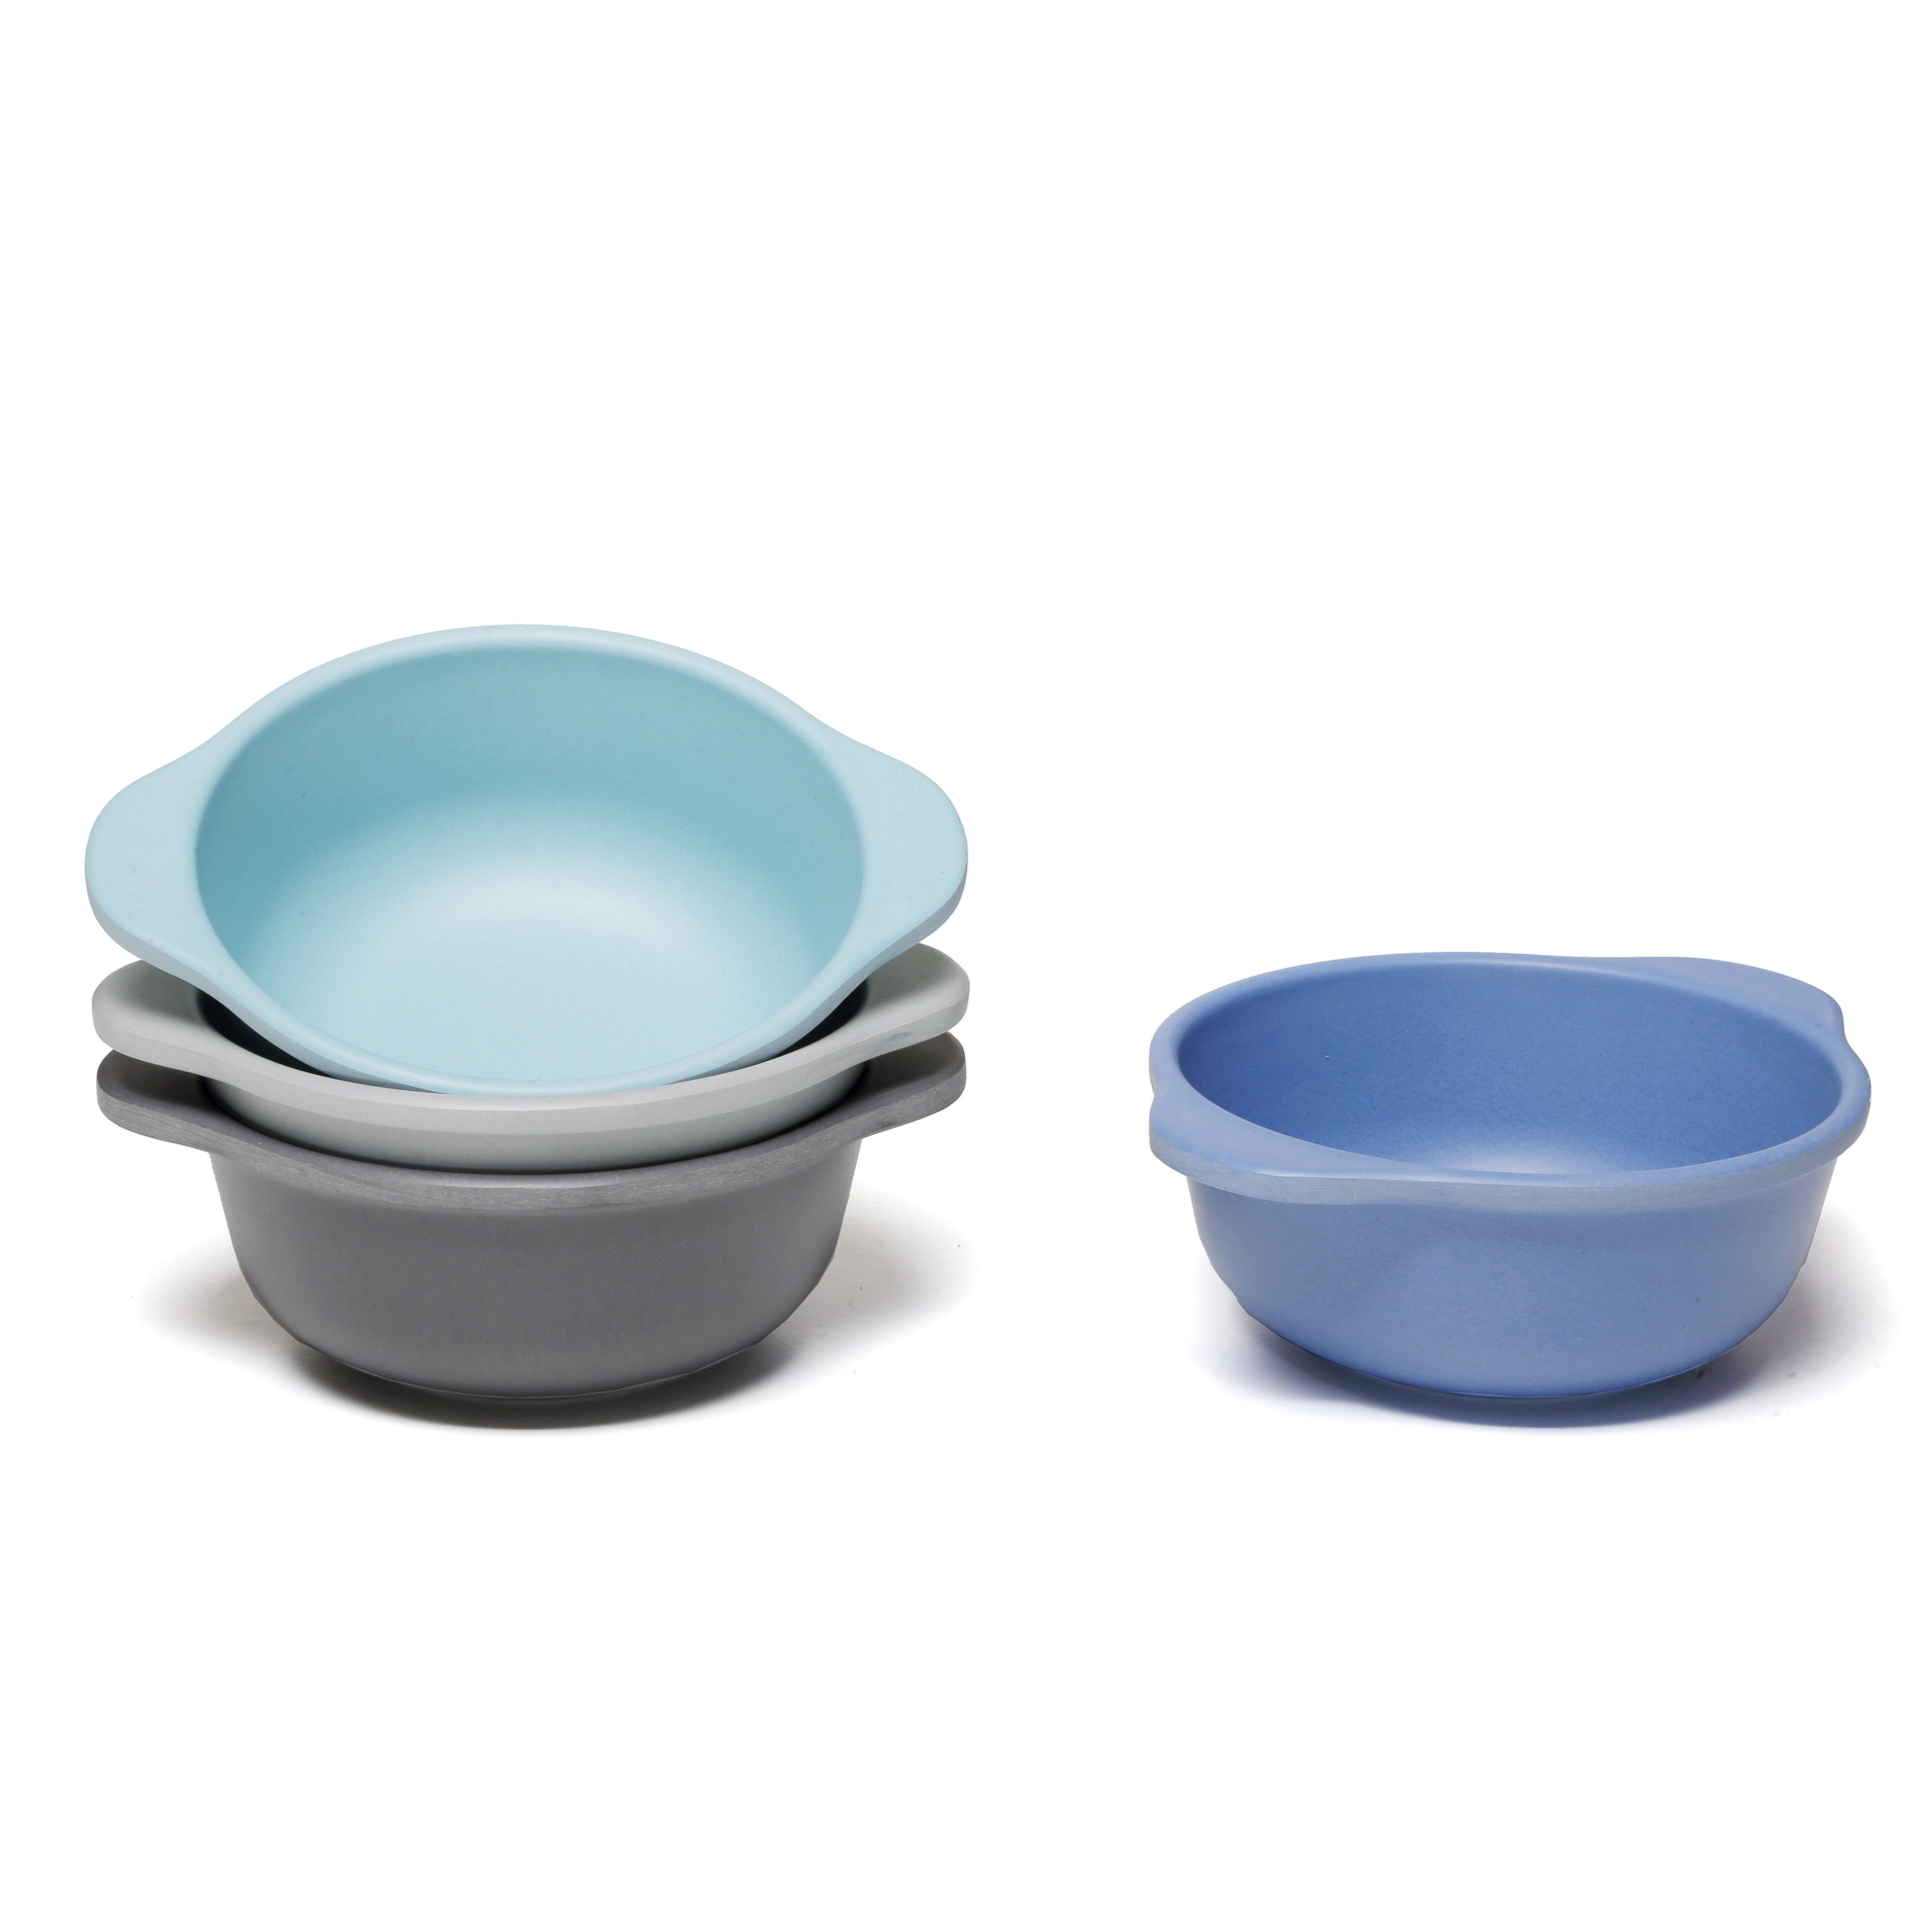 Bamboo Snack Bowl Set - Cruise